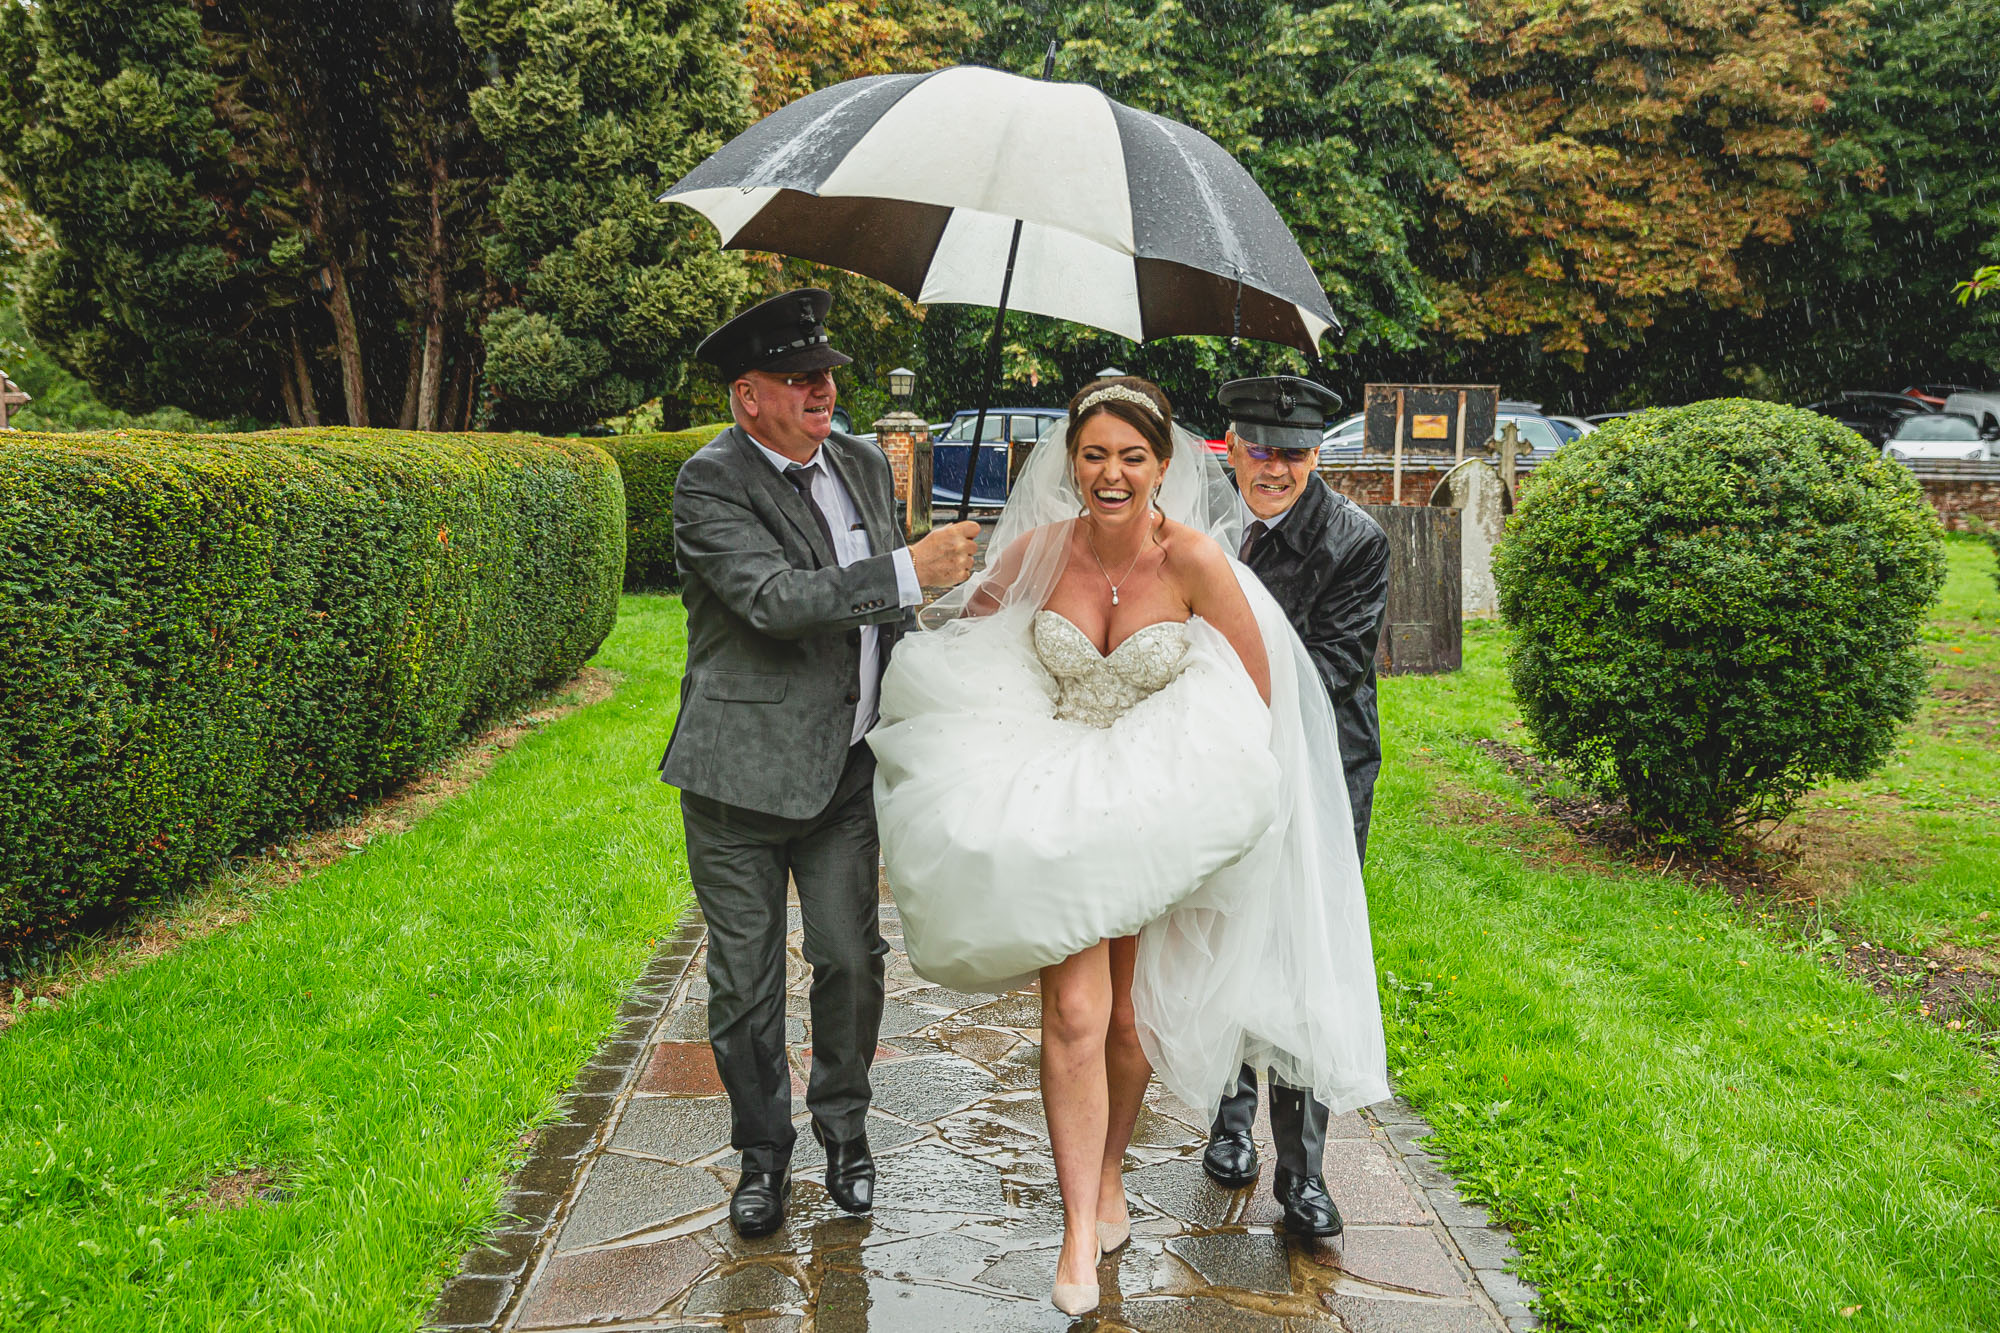 Bride running to the church through the rain